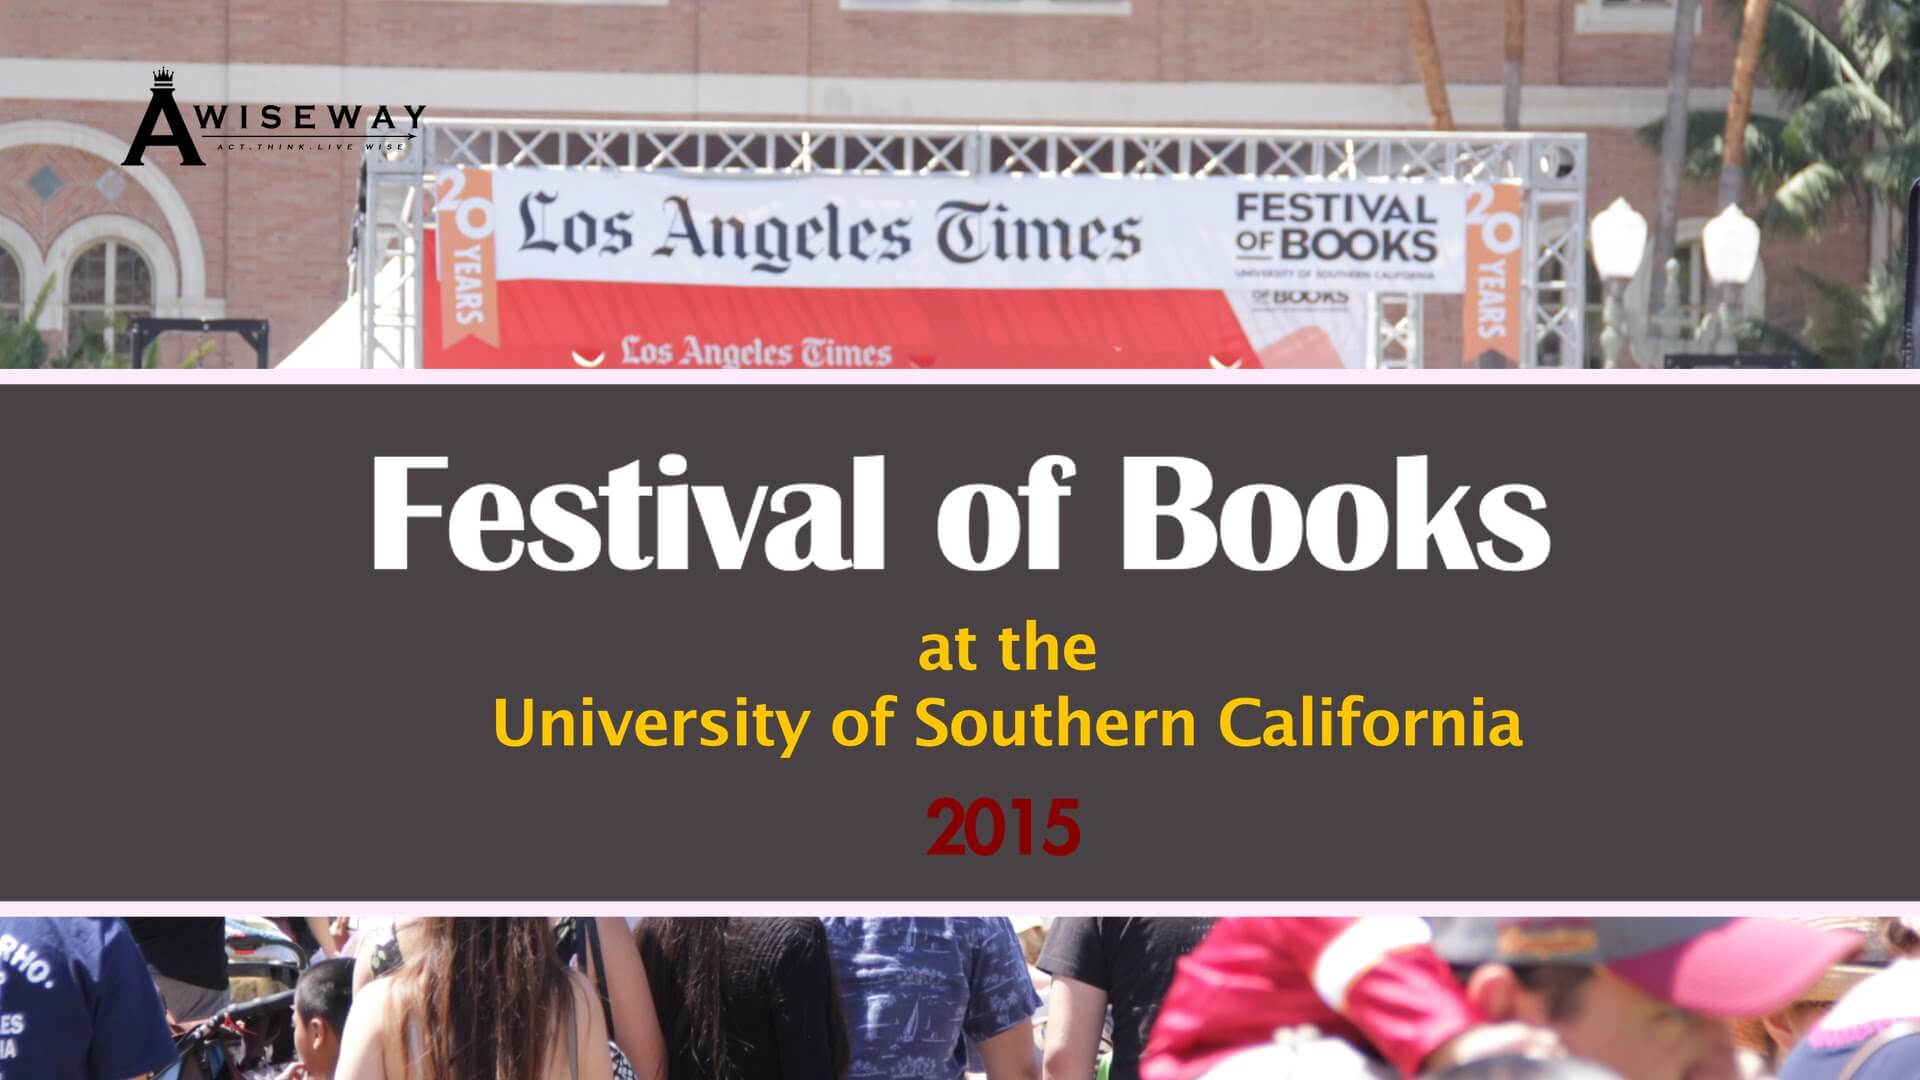 Festival of Books 2015   A Wise Way (Part 3)